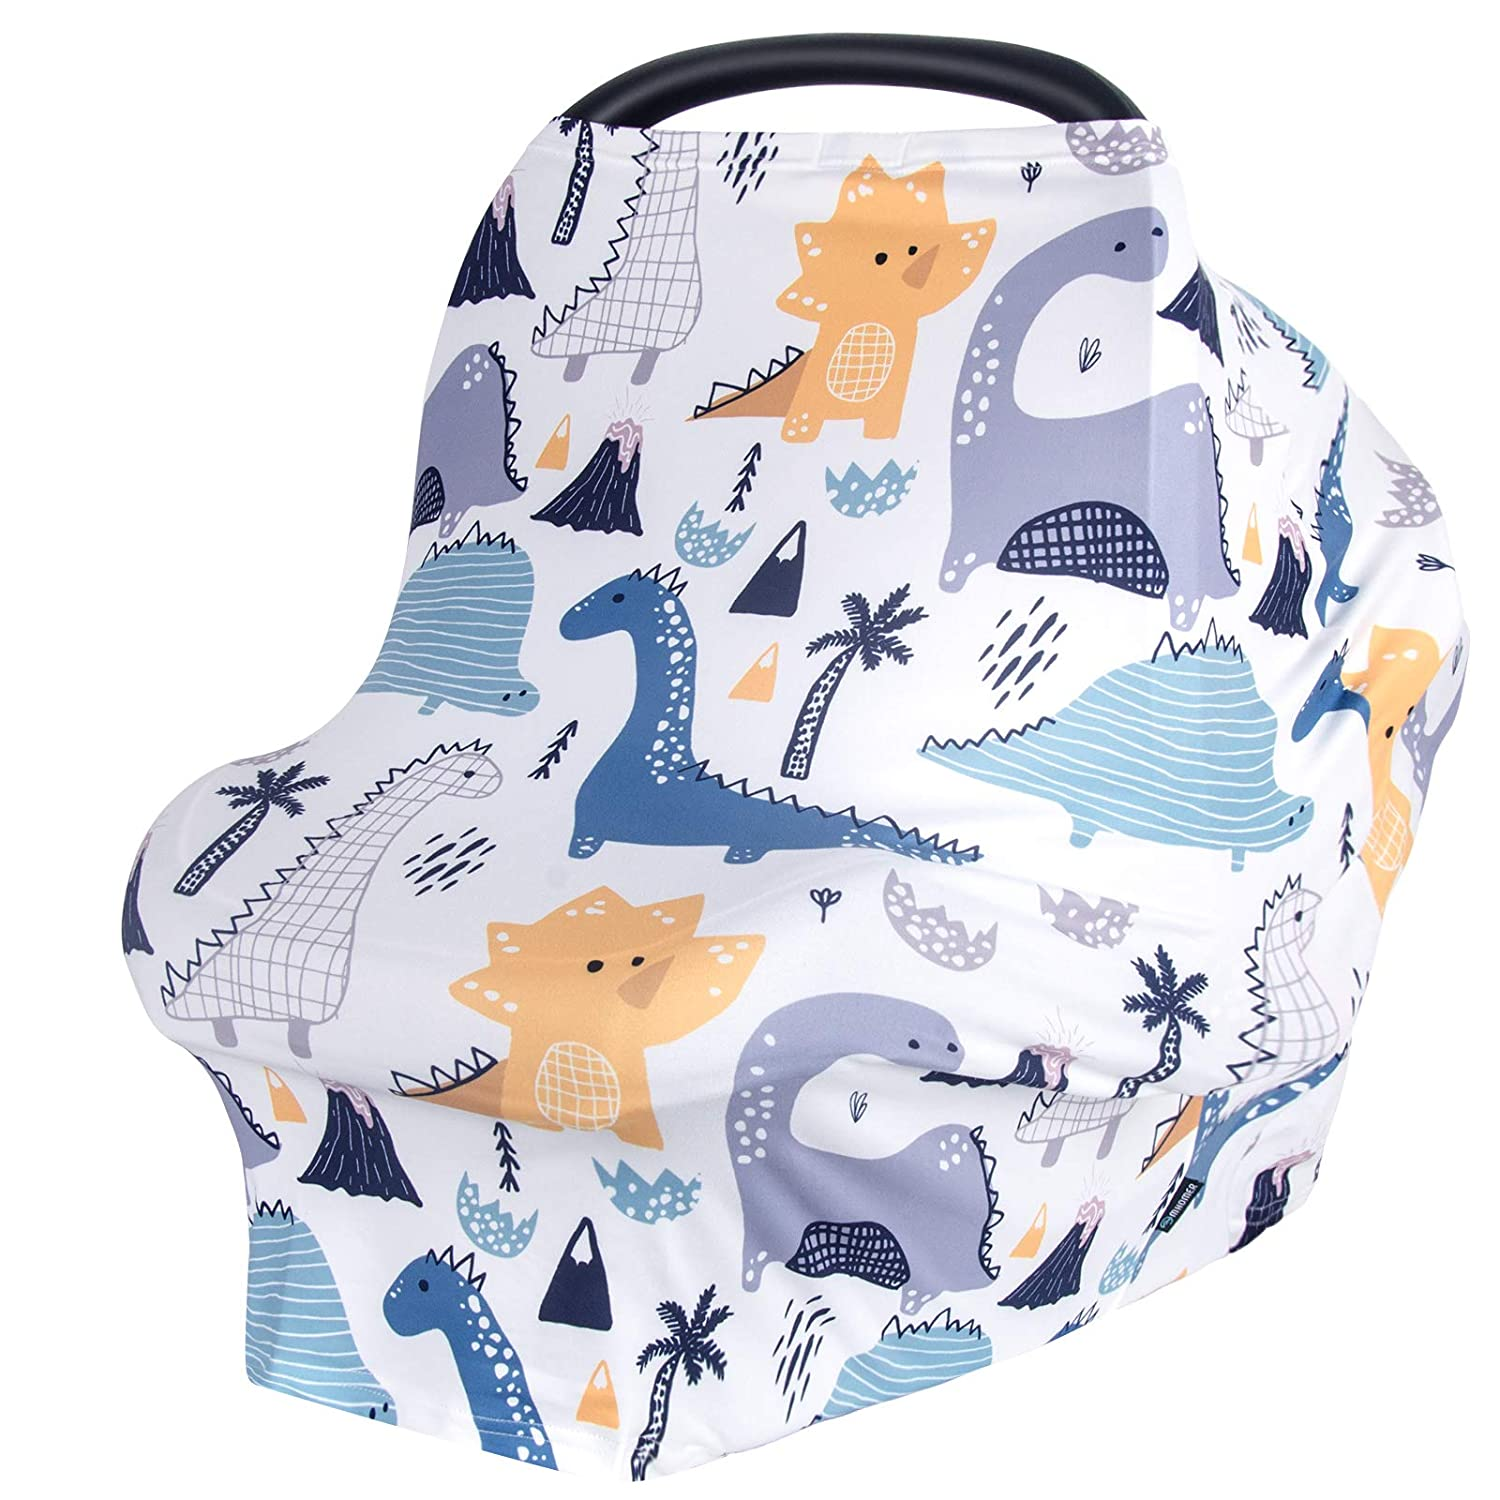 Car Seat Covers for Babies, Nursing Cover for Breastfeeding, Baby Carseat Canopy, Carseat Cover for Boys and Girls, Infant Car Seat Cover, Multiuse Baby Shopping Cart/High Chair/Stroller Covers